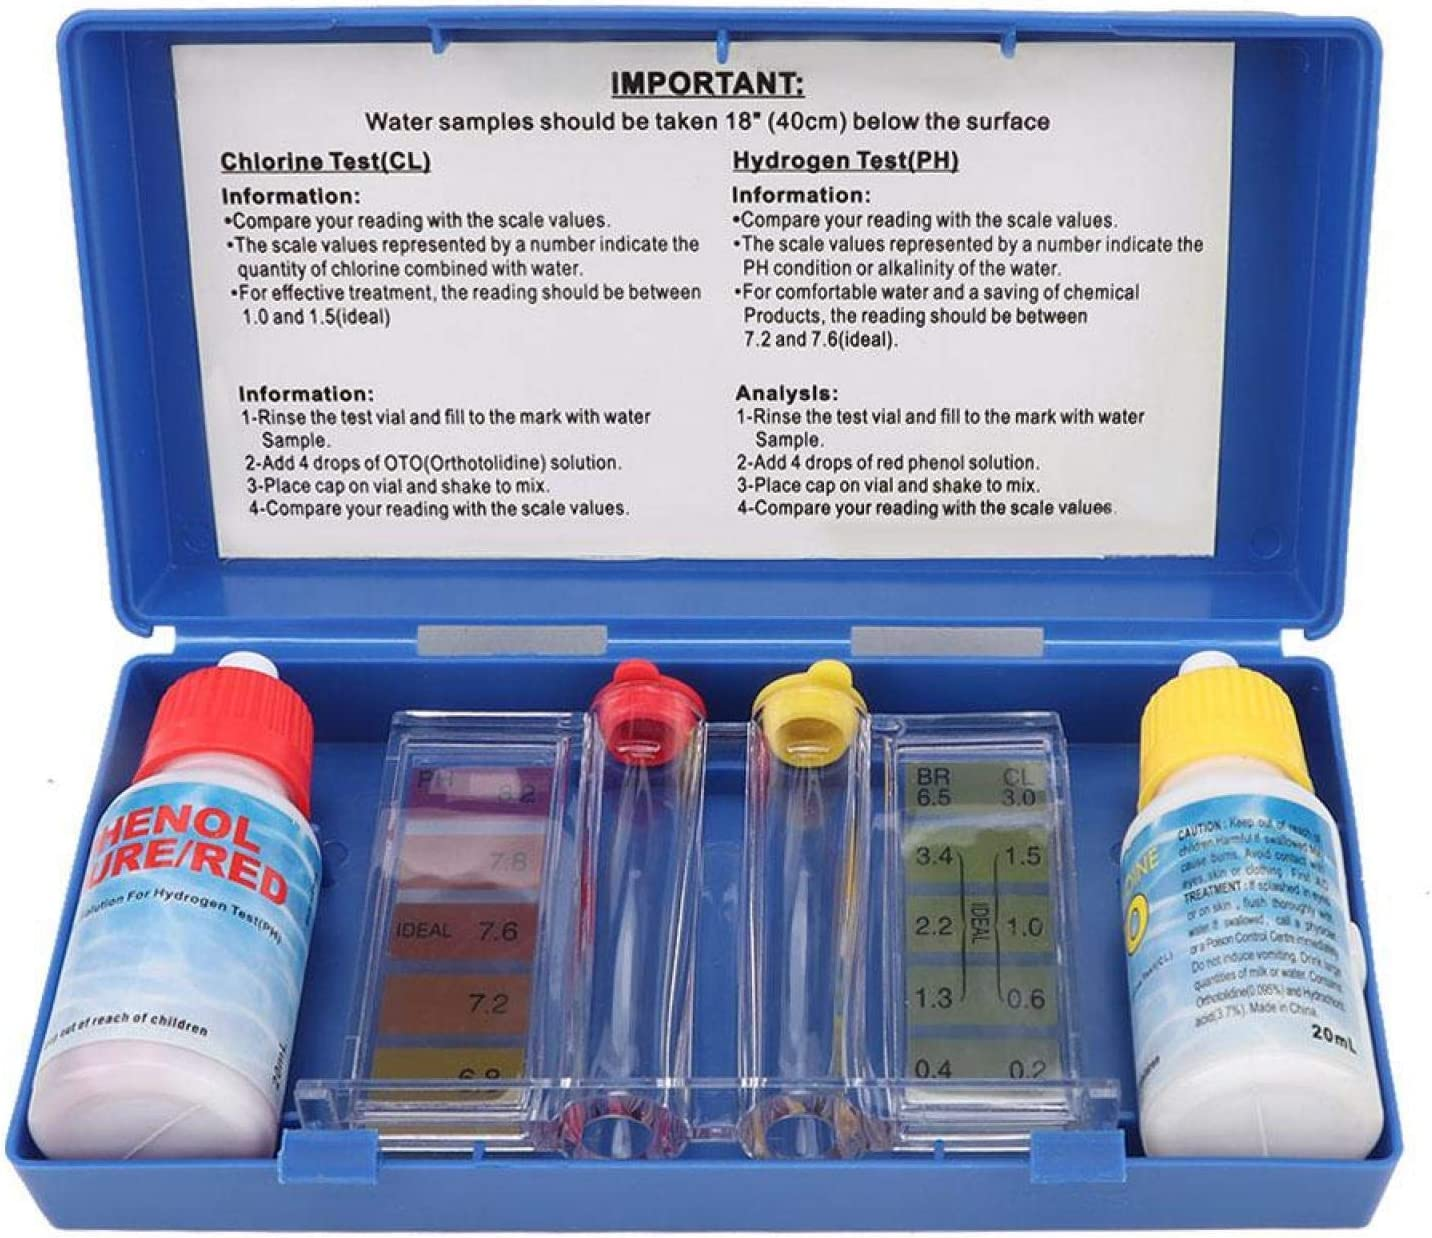 Aoutecen Practical PH Test New popularity Kit and Chlorine for Tucson Mall Testing